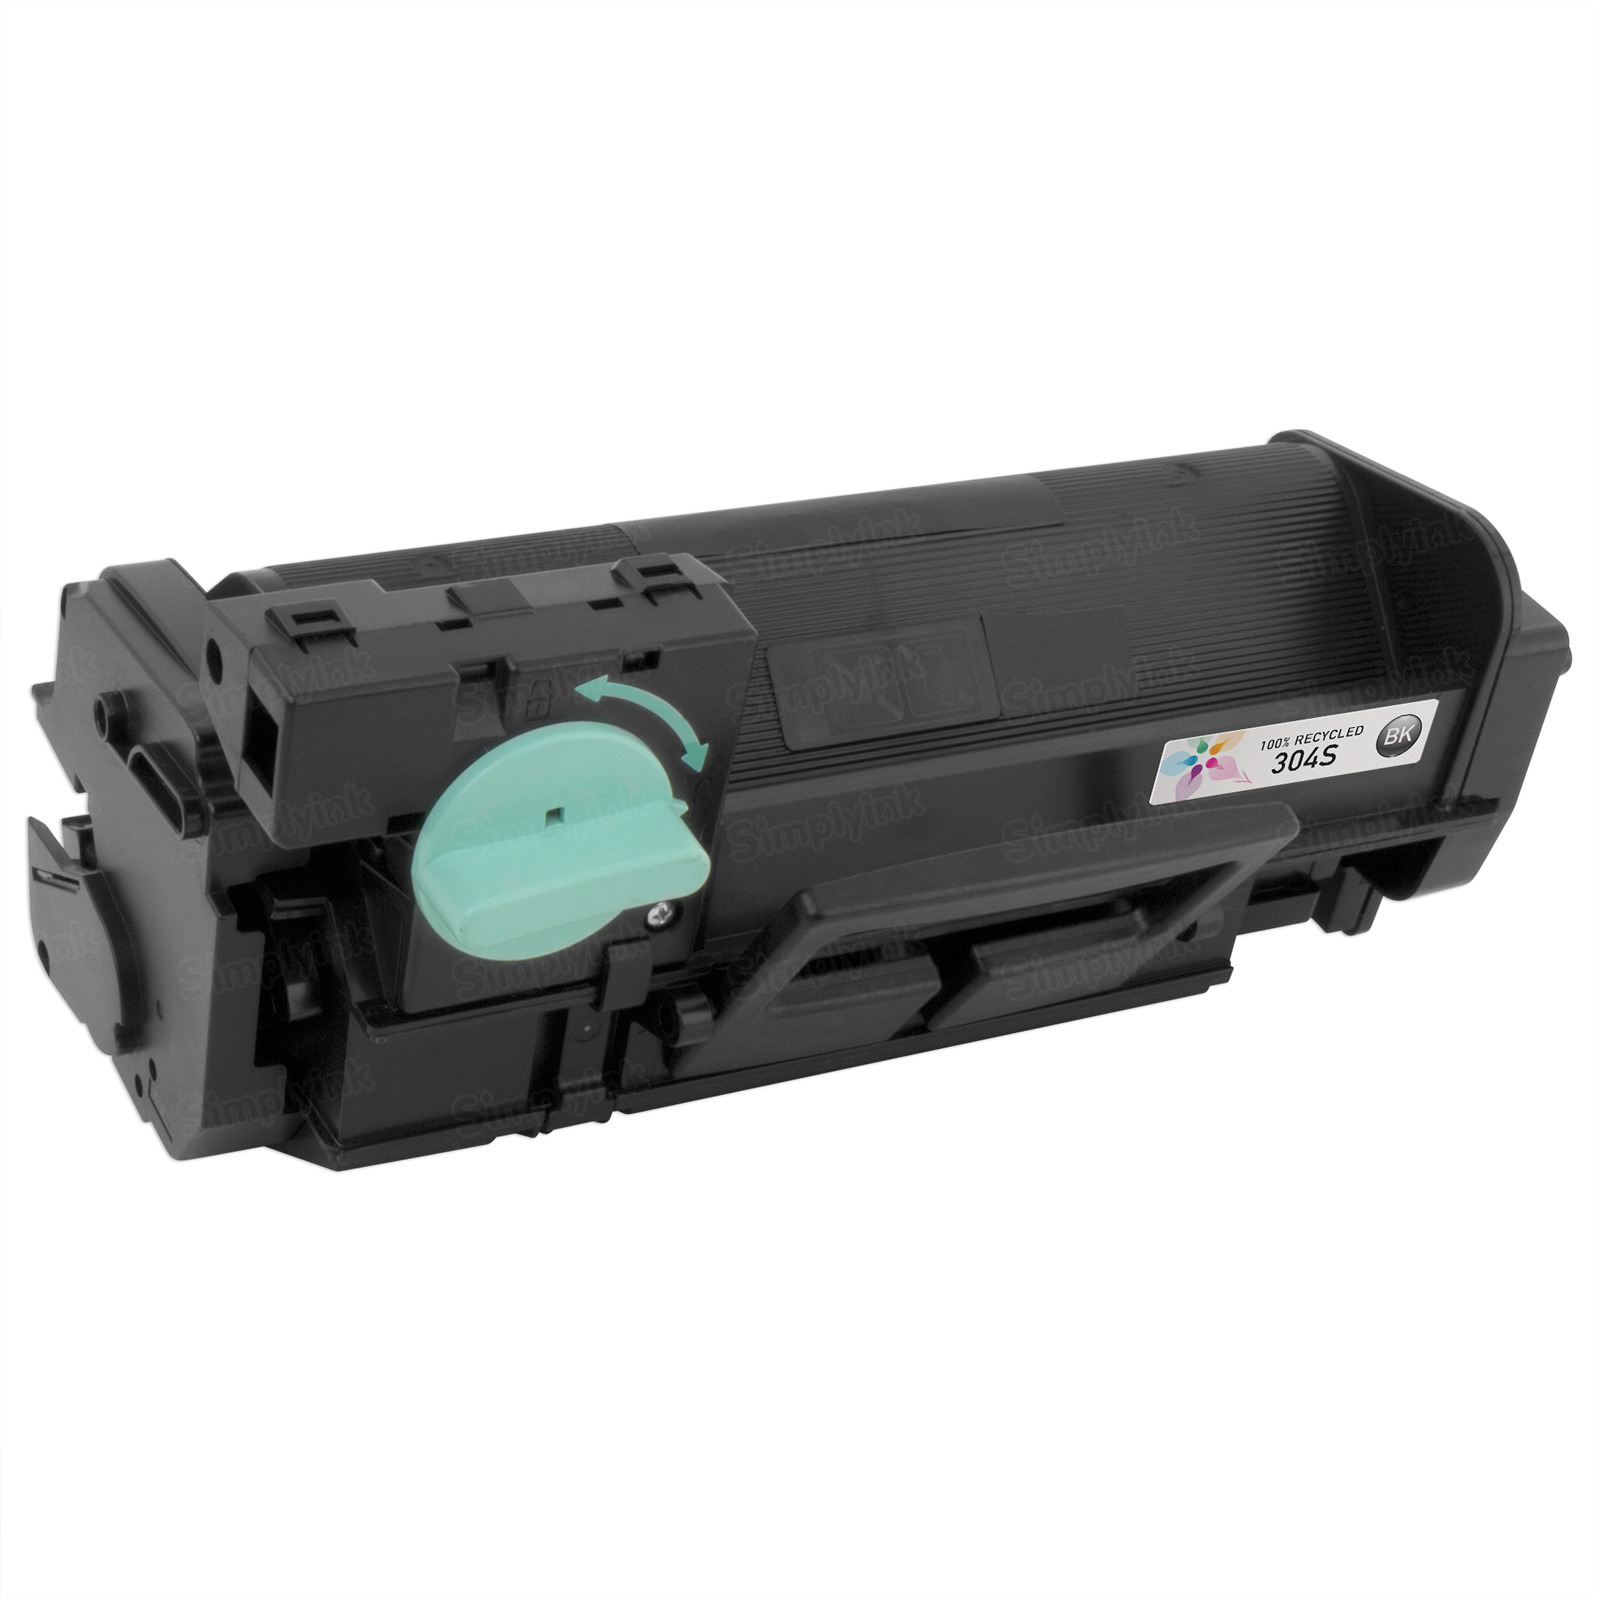 Remanufactured Black Toner for Samsung (304S)